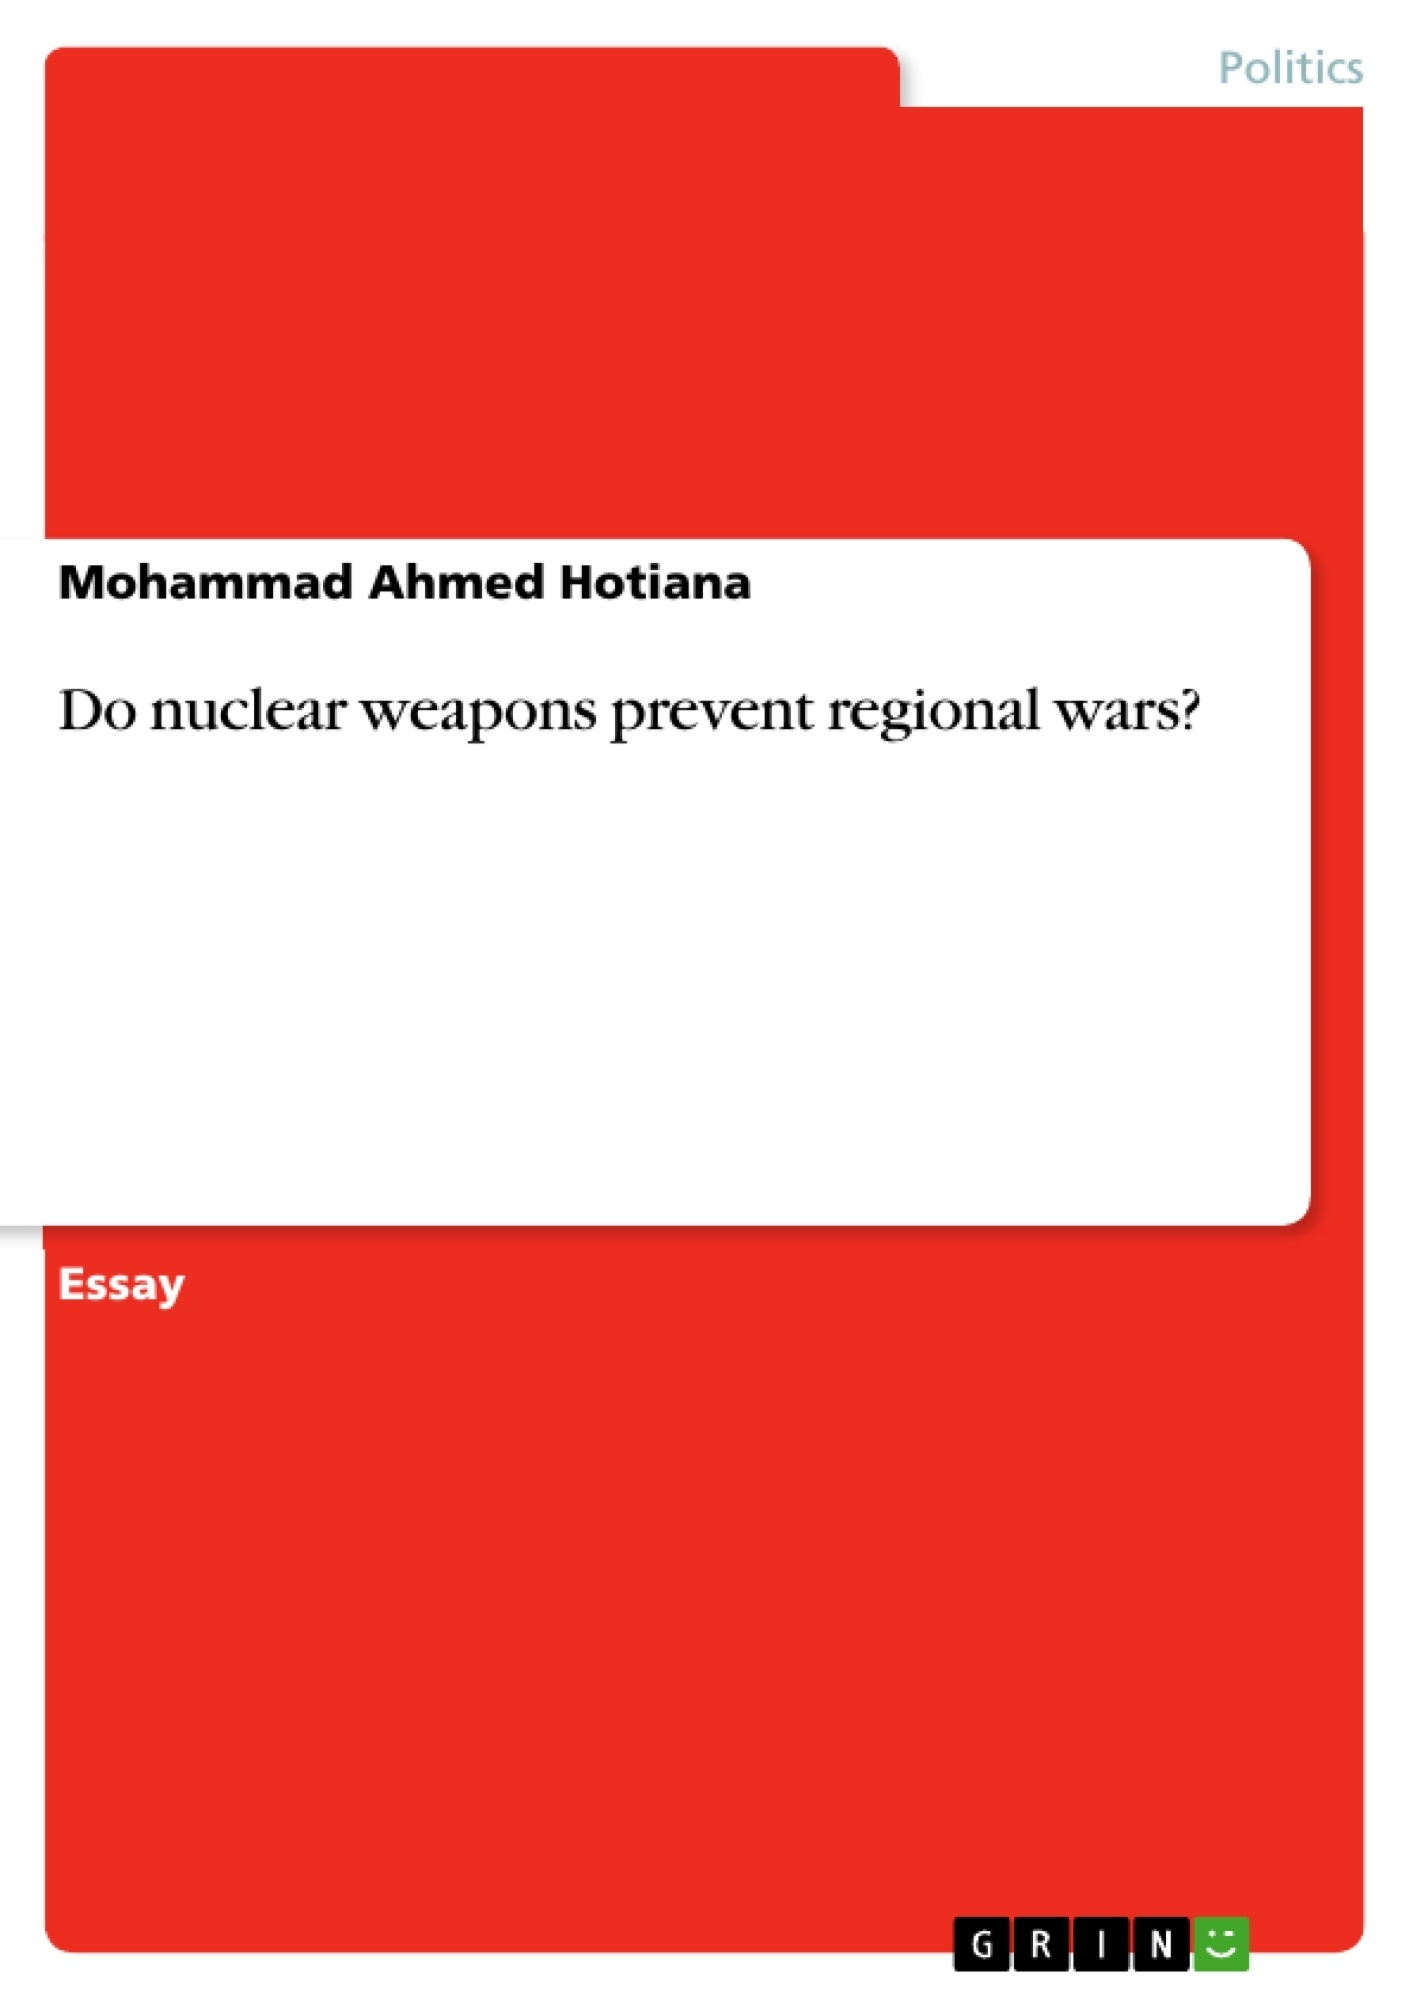 Title: Do nuclear weapons prevent regional wars?